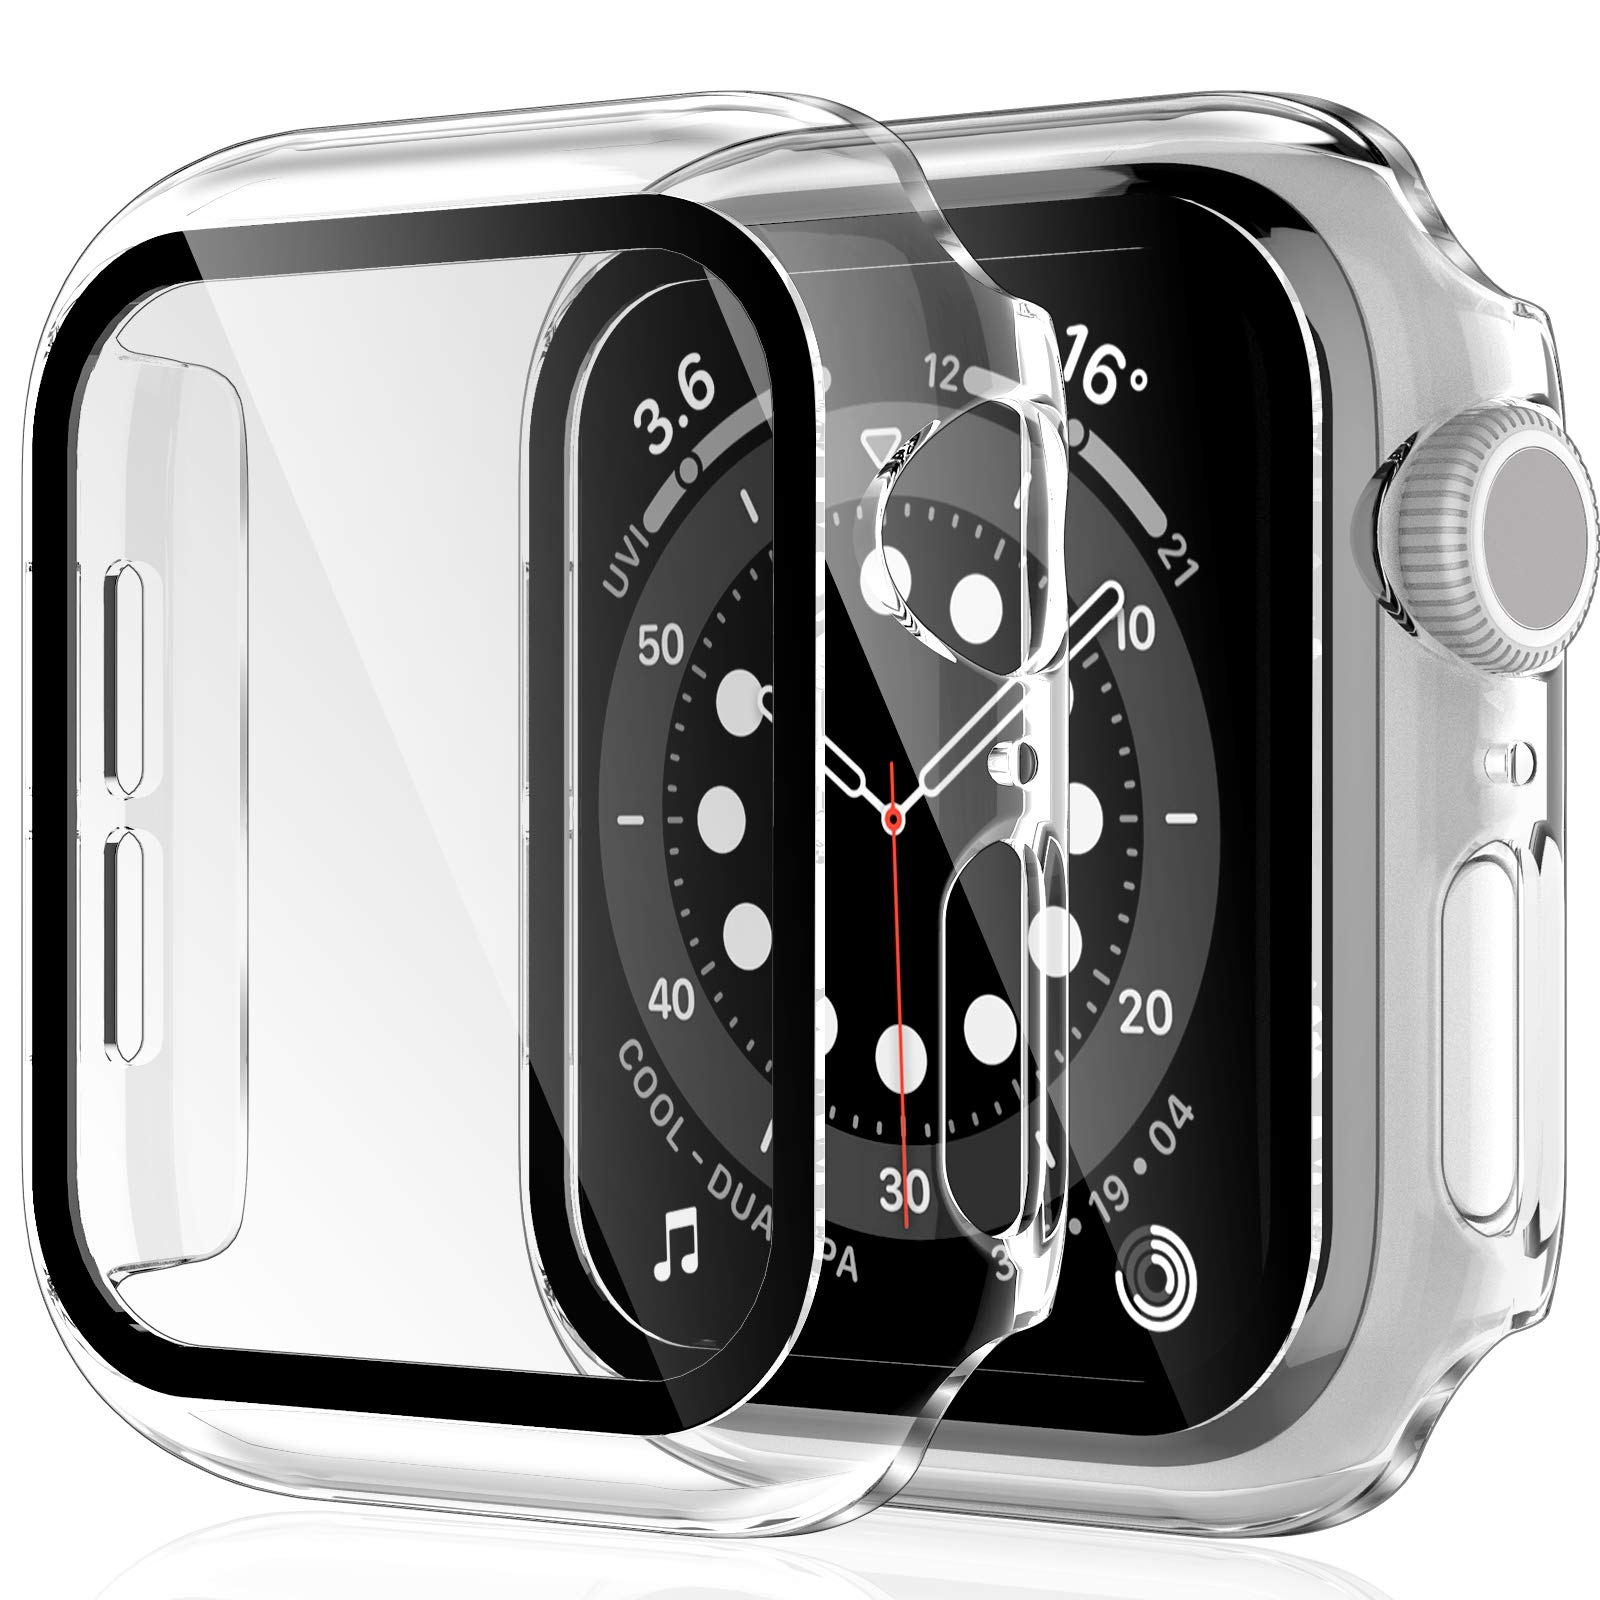 2 Pack HATOSHI Hard Case for Apple Watch 40mm Series 6, 5, 4, SE Built-in Tempered Glass Screen Protector, Ultra-Thin All Around Protective Glass Screen Cover for iWatch 40mm, Clear